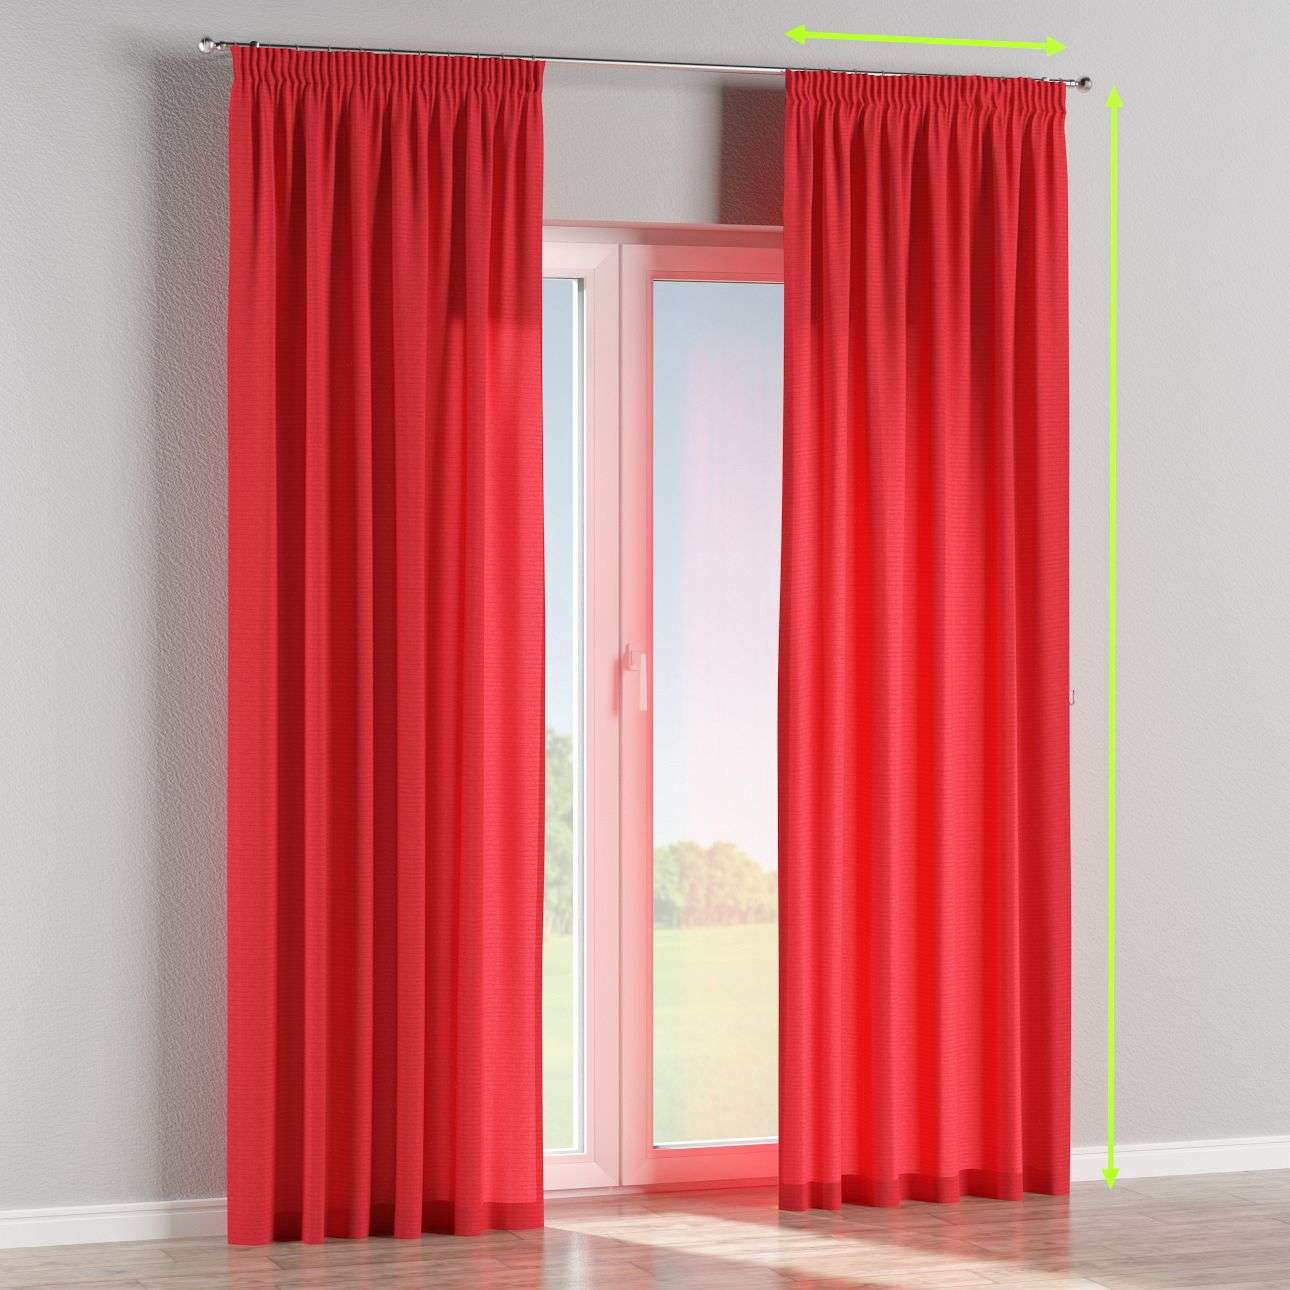 Pencil pleat lined curtains in collection Jupiter, fabric: 127-14